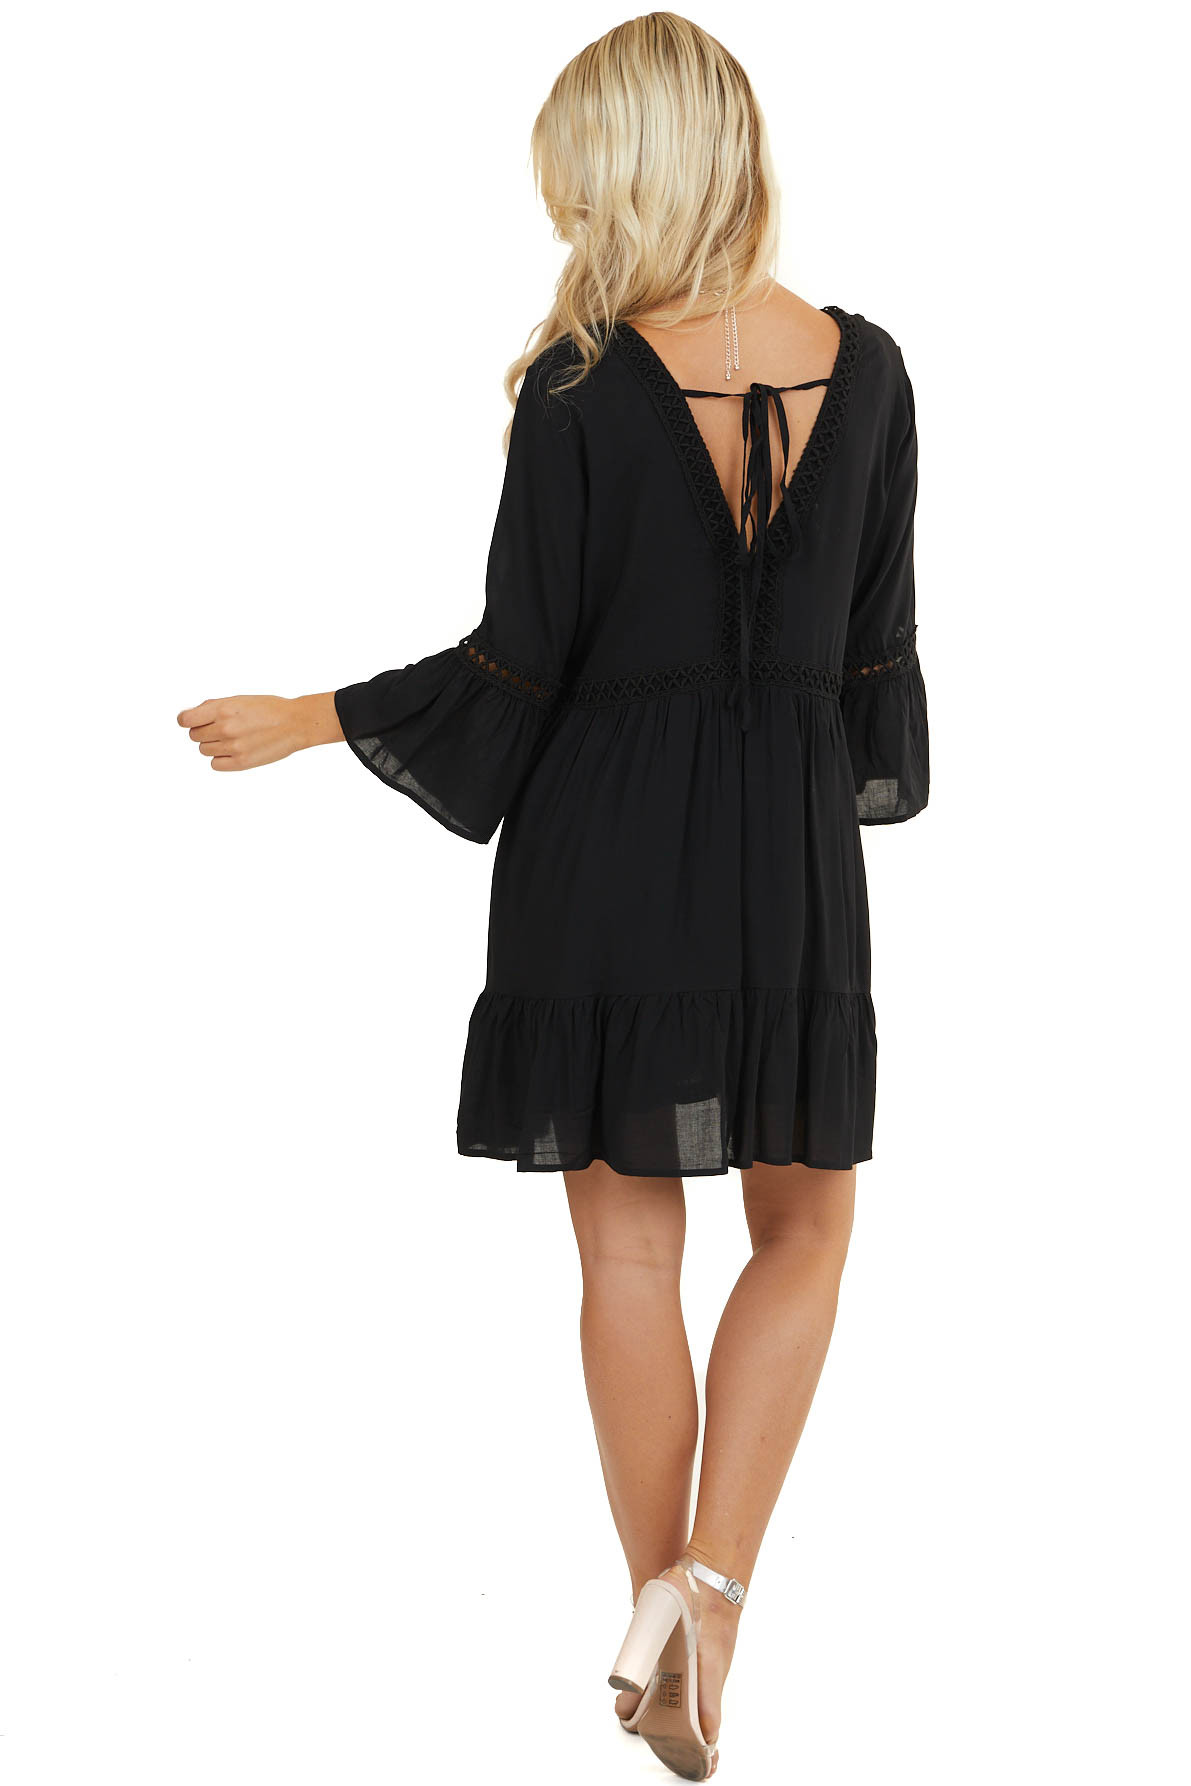 Black 3/4 Sleeve V Neck Dress with Embroidery Details